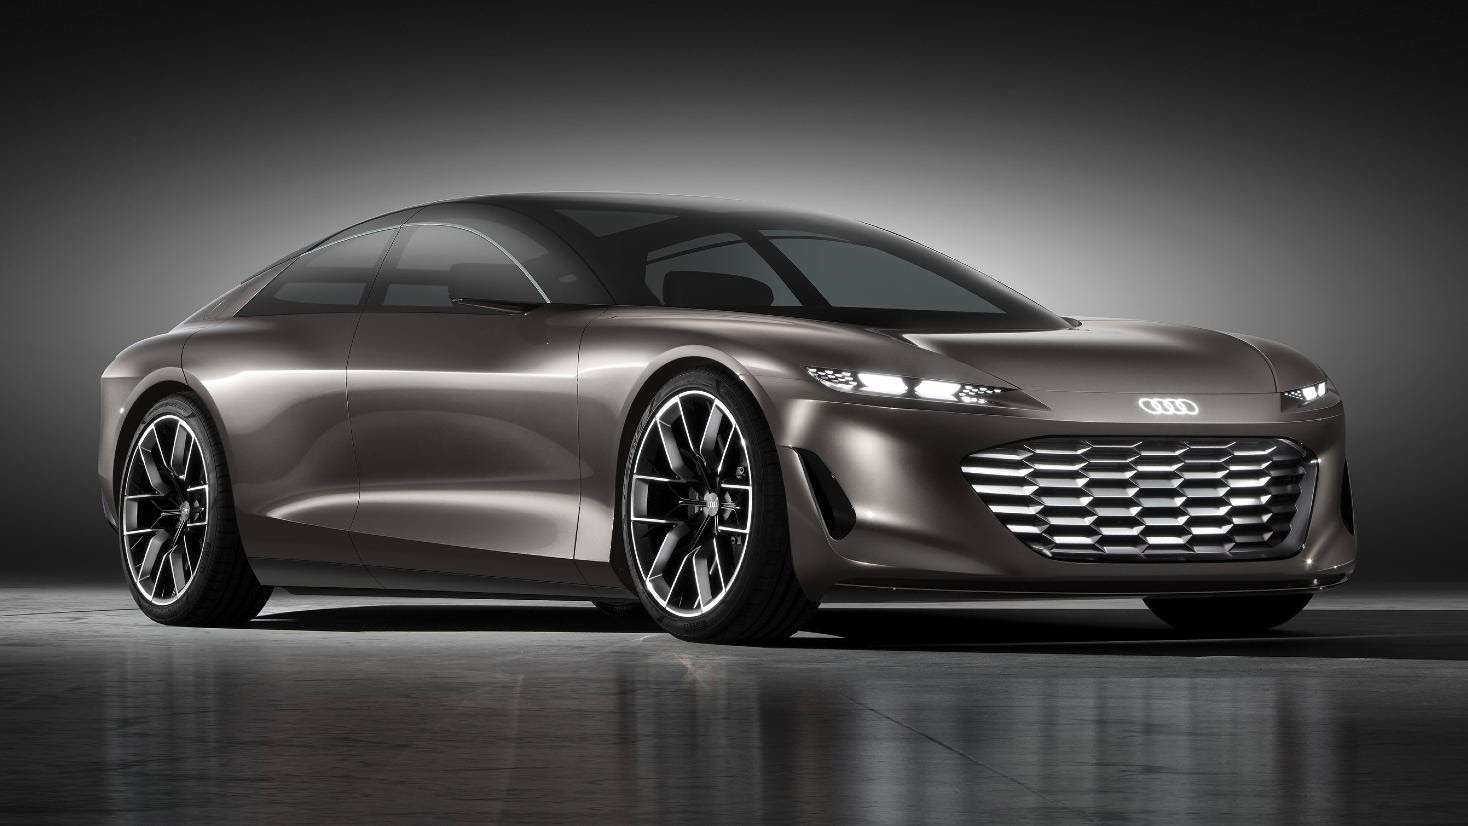 The grandsphere is a glimpse of what one can expect from the successor to the Audi A8. Image: Audi